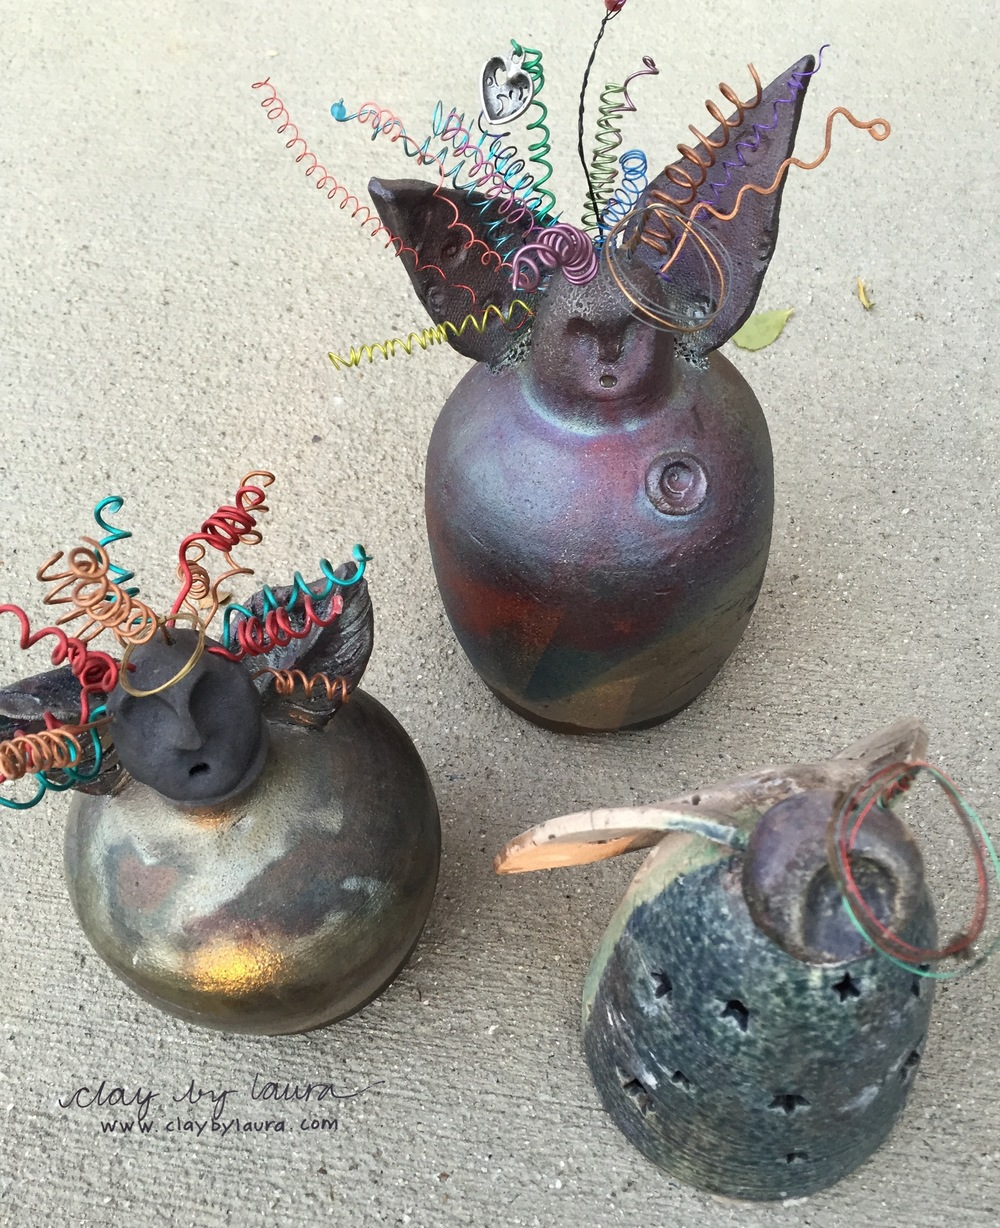 I used the Raku method of firing to create these angels over the years. It was the start of my multi-media approach to clay. The first year I made these I used actual springs from the hardware store to create the hair. Then I discovered colorful wire and beads! Look out!!!